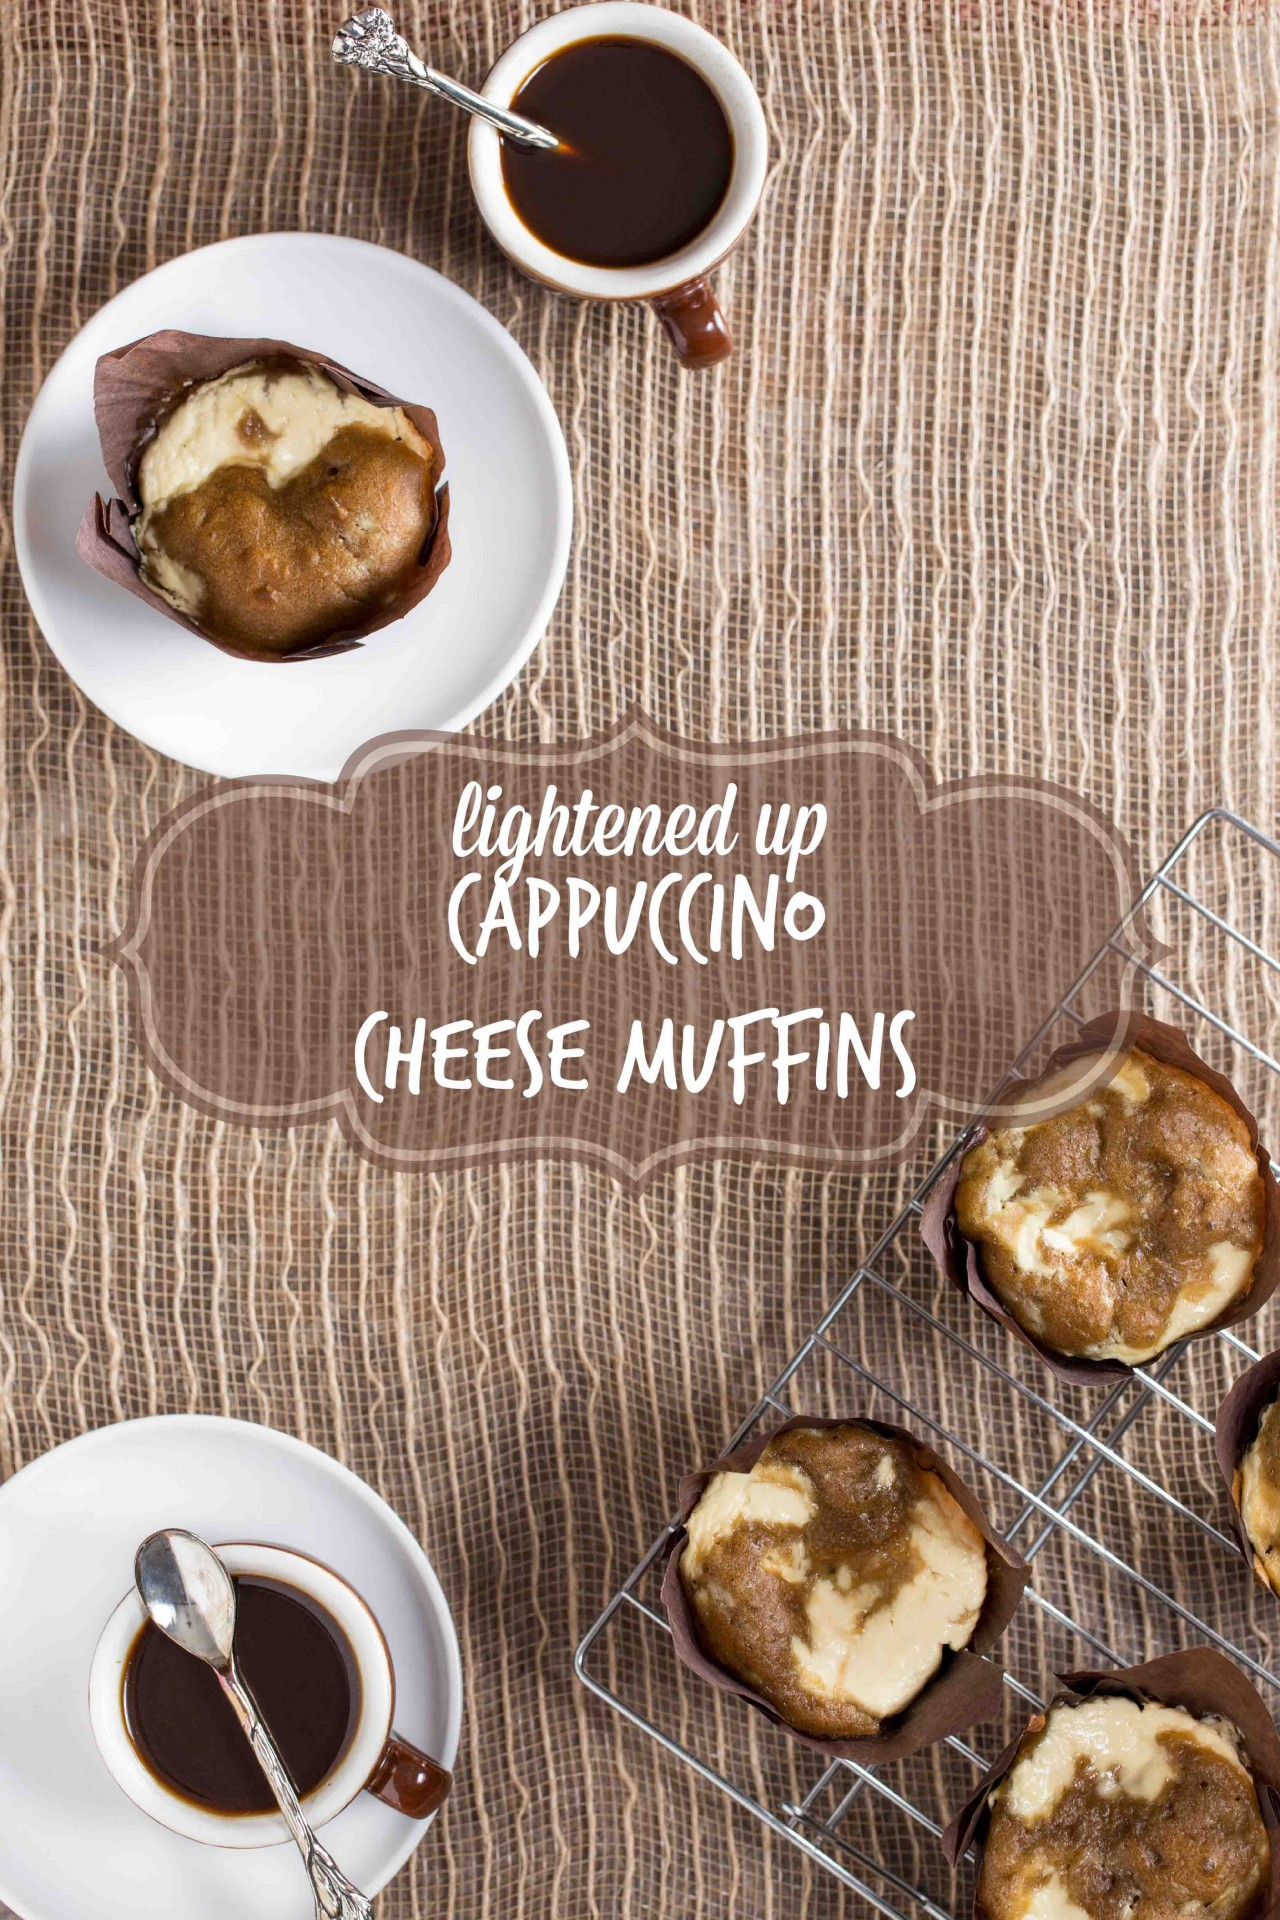 lightened up cappuccino cheese muffins on Overtime Cook